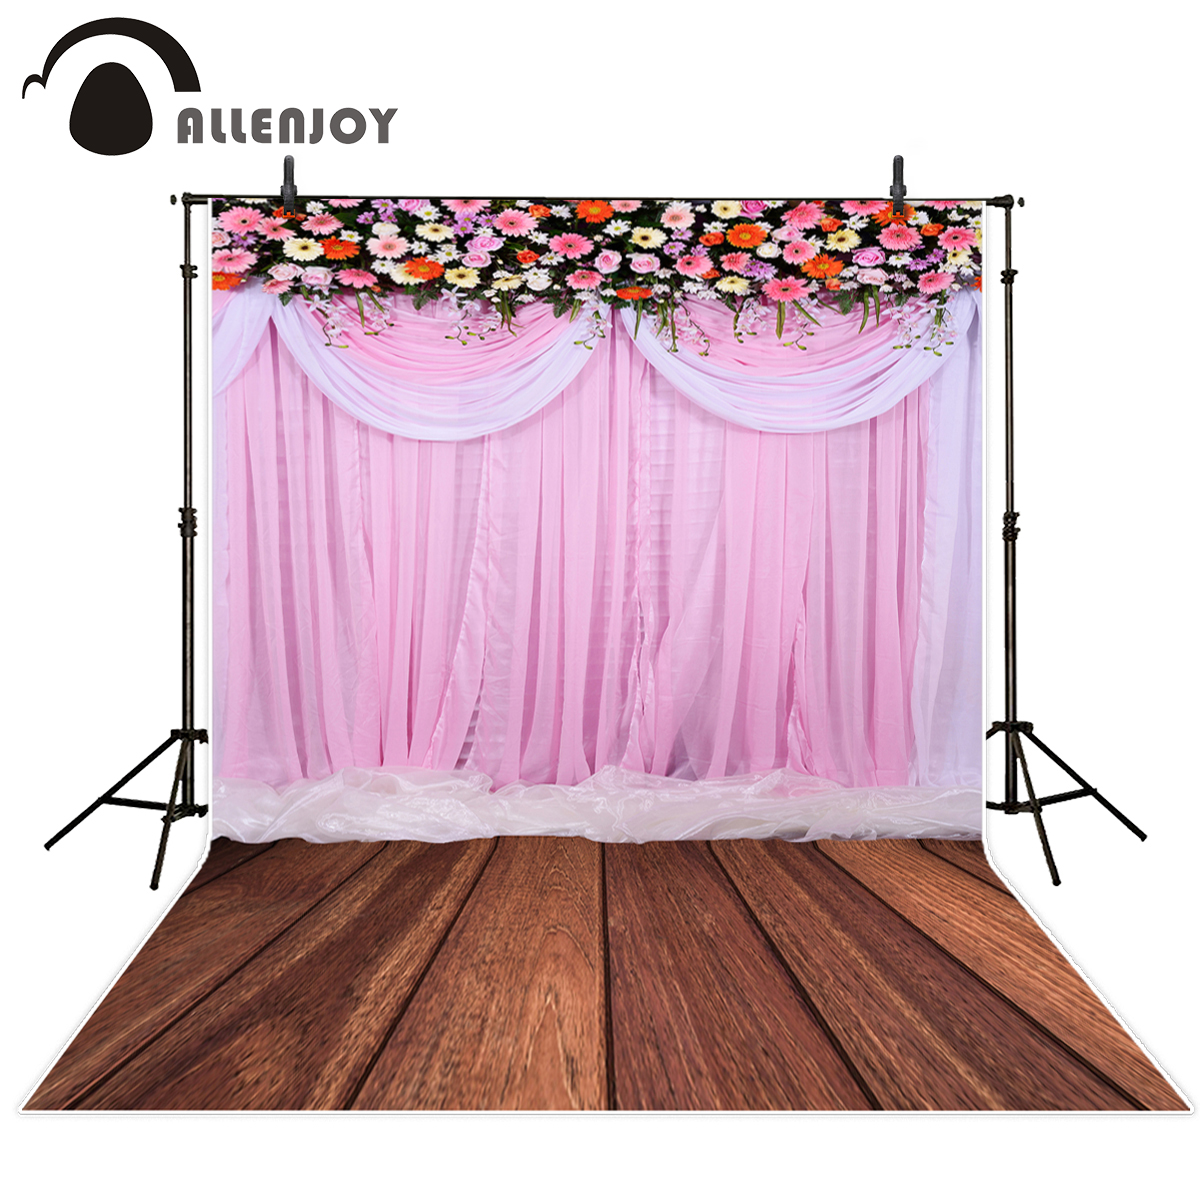 Allenjoy photography backdrops pink flower wood wedding yarn romantic photo background vinyl Fund for newborn photography studio allenjoy photography backdrops pink curtains stripes birthday background customize photo booth for a photo shoot vinyl backdrops